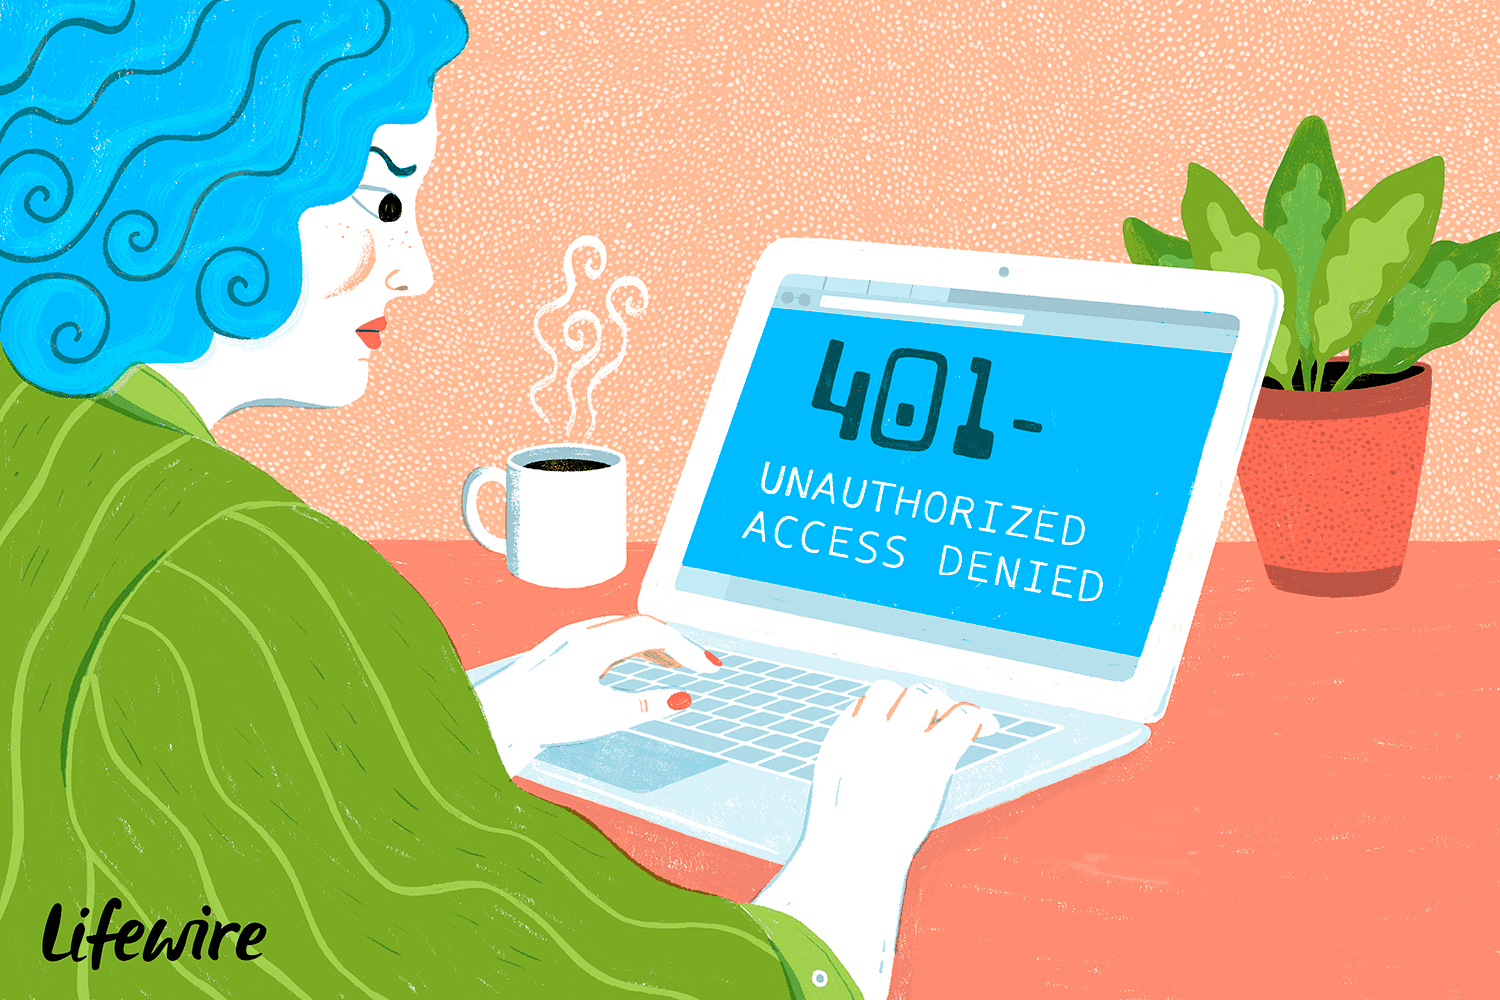 What Is a 401 Unauthorized Error and How Do You Fix It?